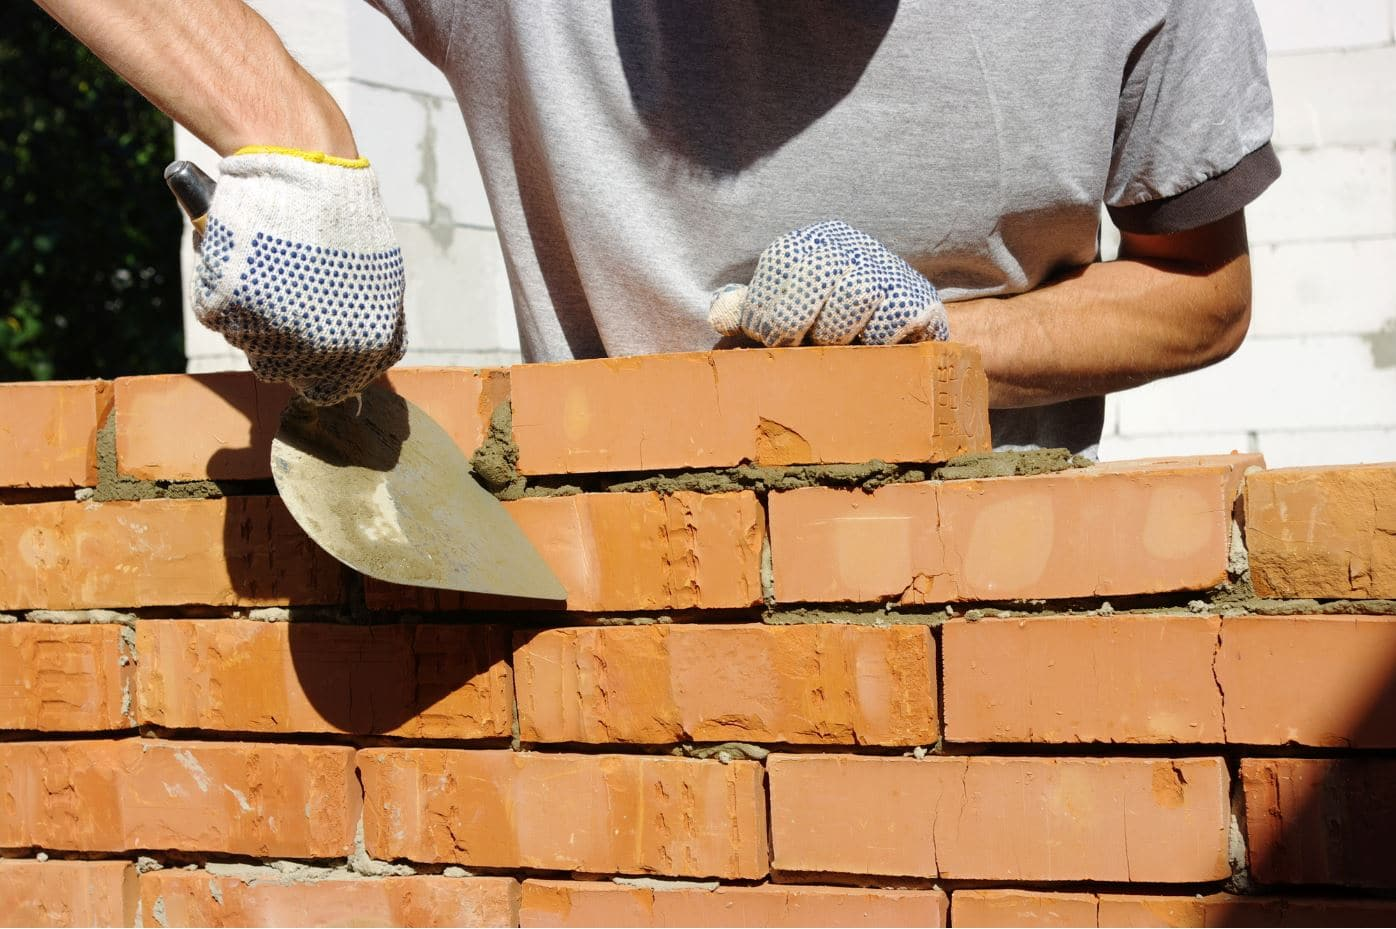 Residential bricklayers